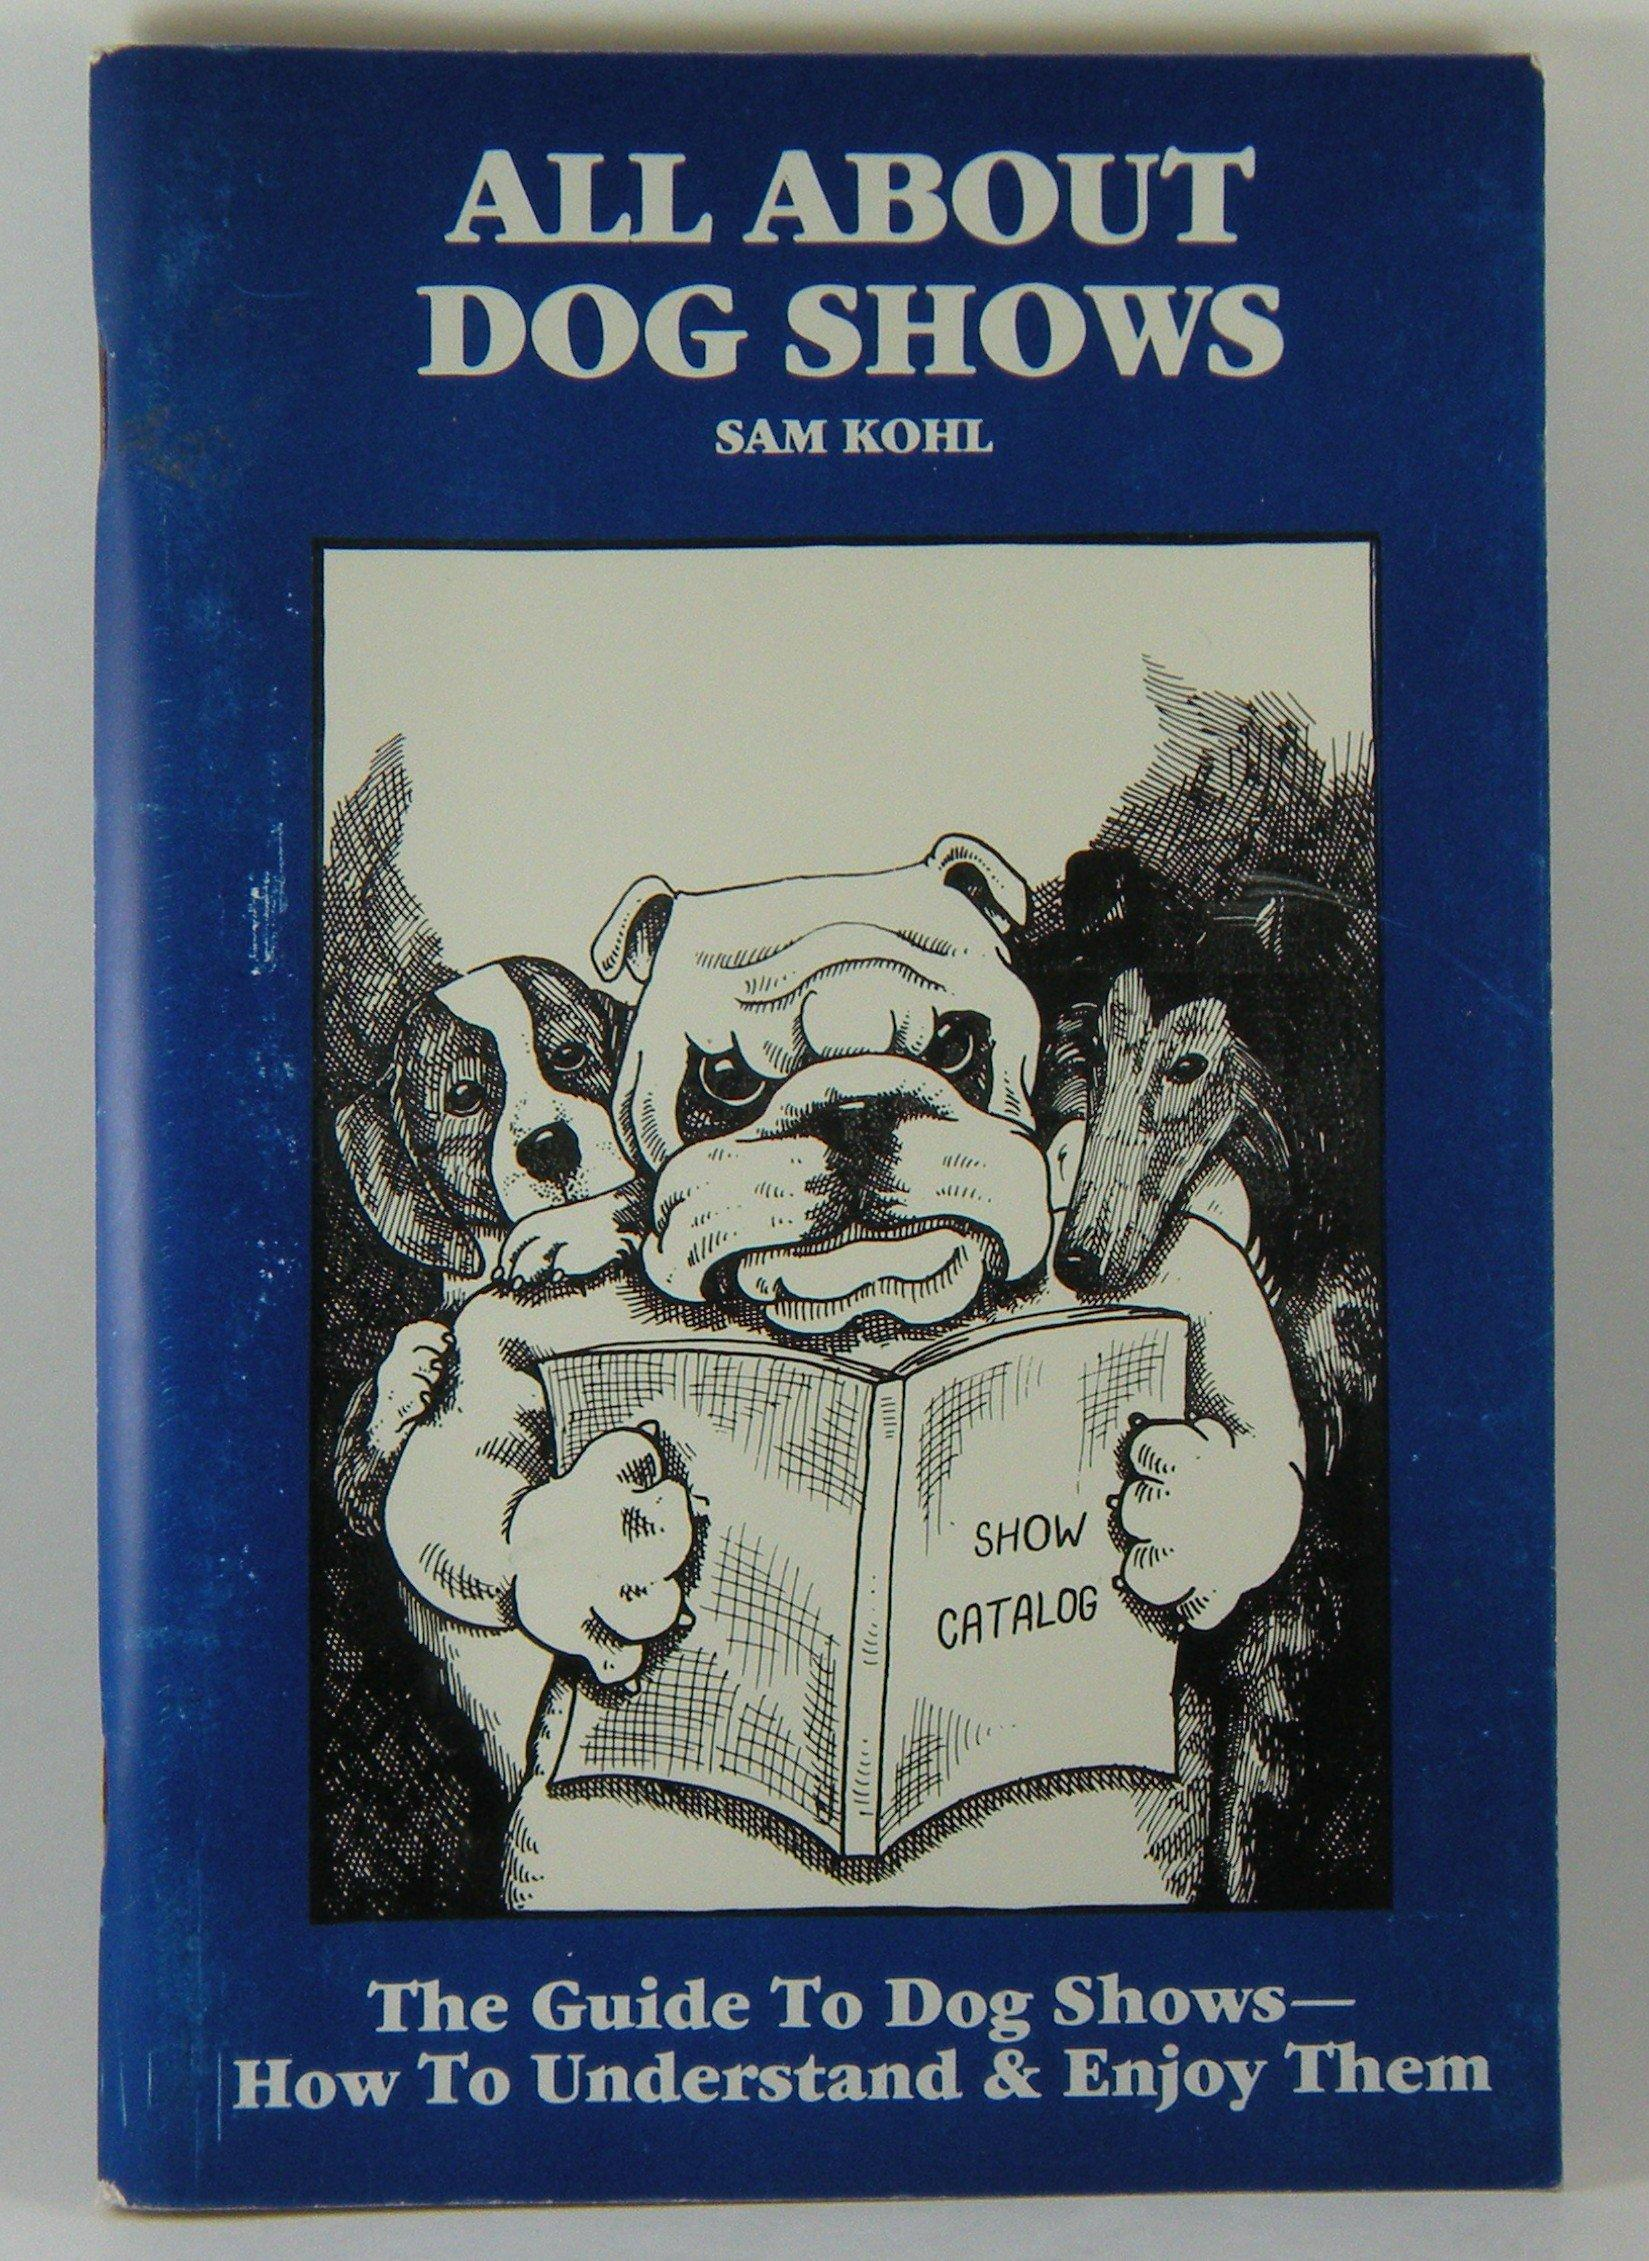 All About Dog Shows by Sam Kohl